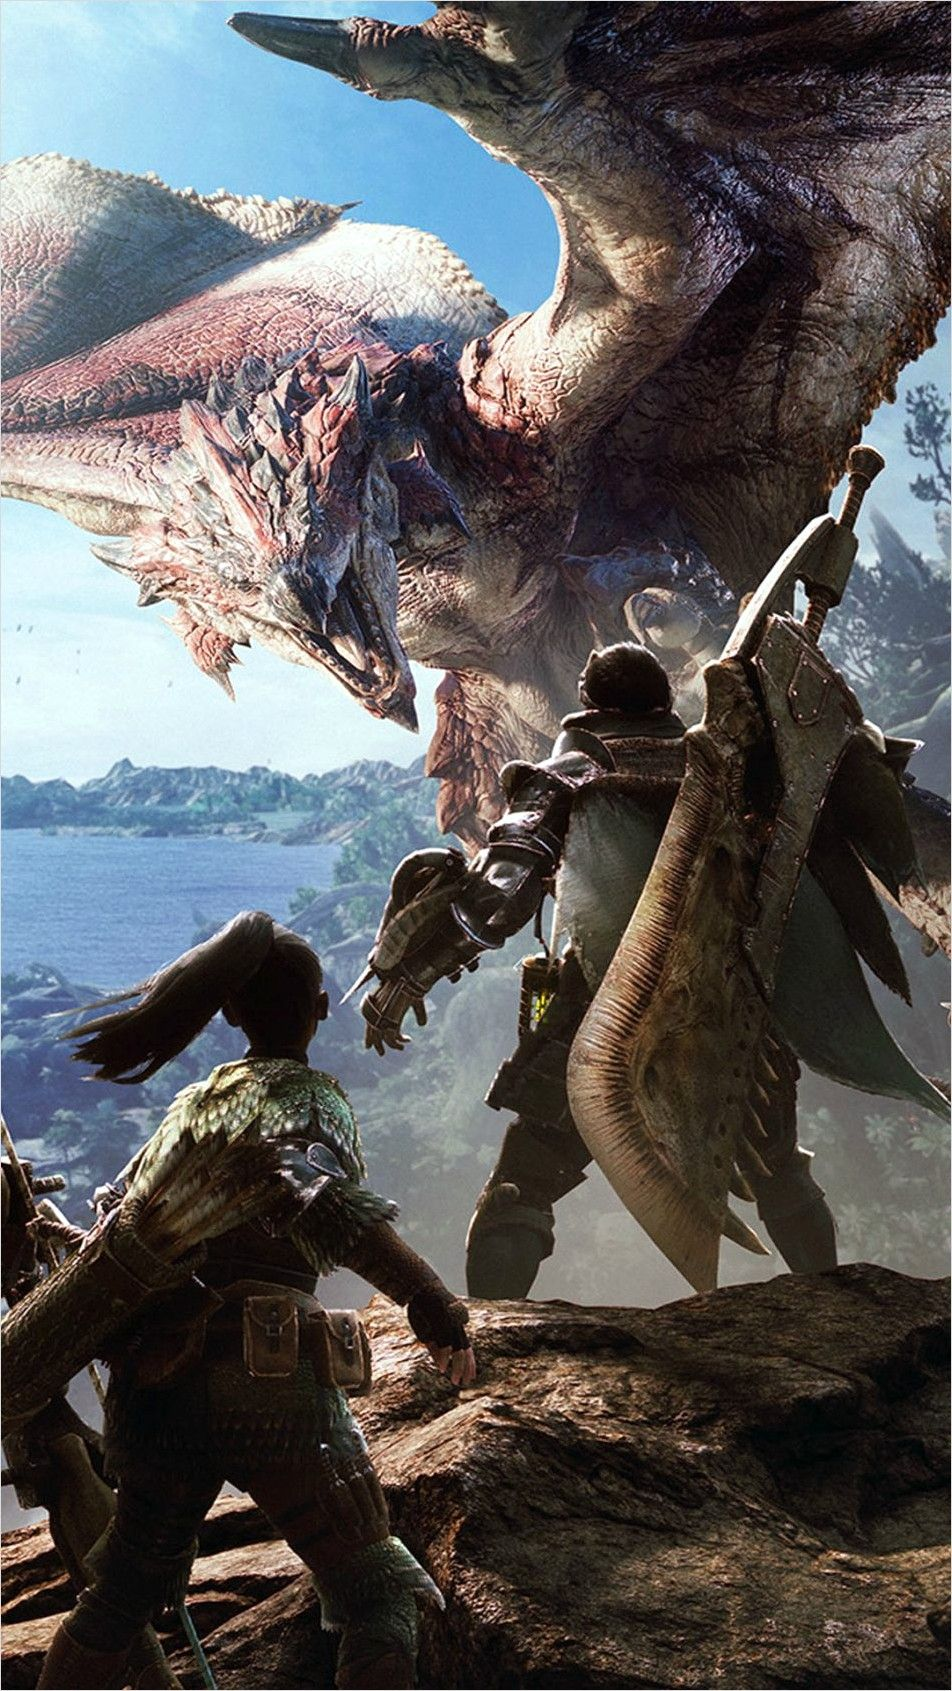 Monster Hunter World Wallpaper 4k In 2020 Monster Hunter World Wallpaper Monster Hunter Monster Hunter World